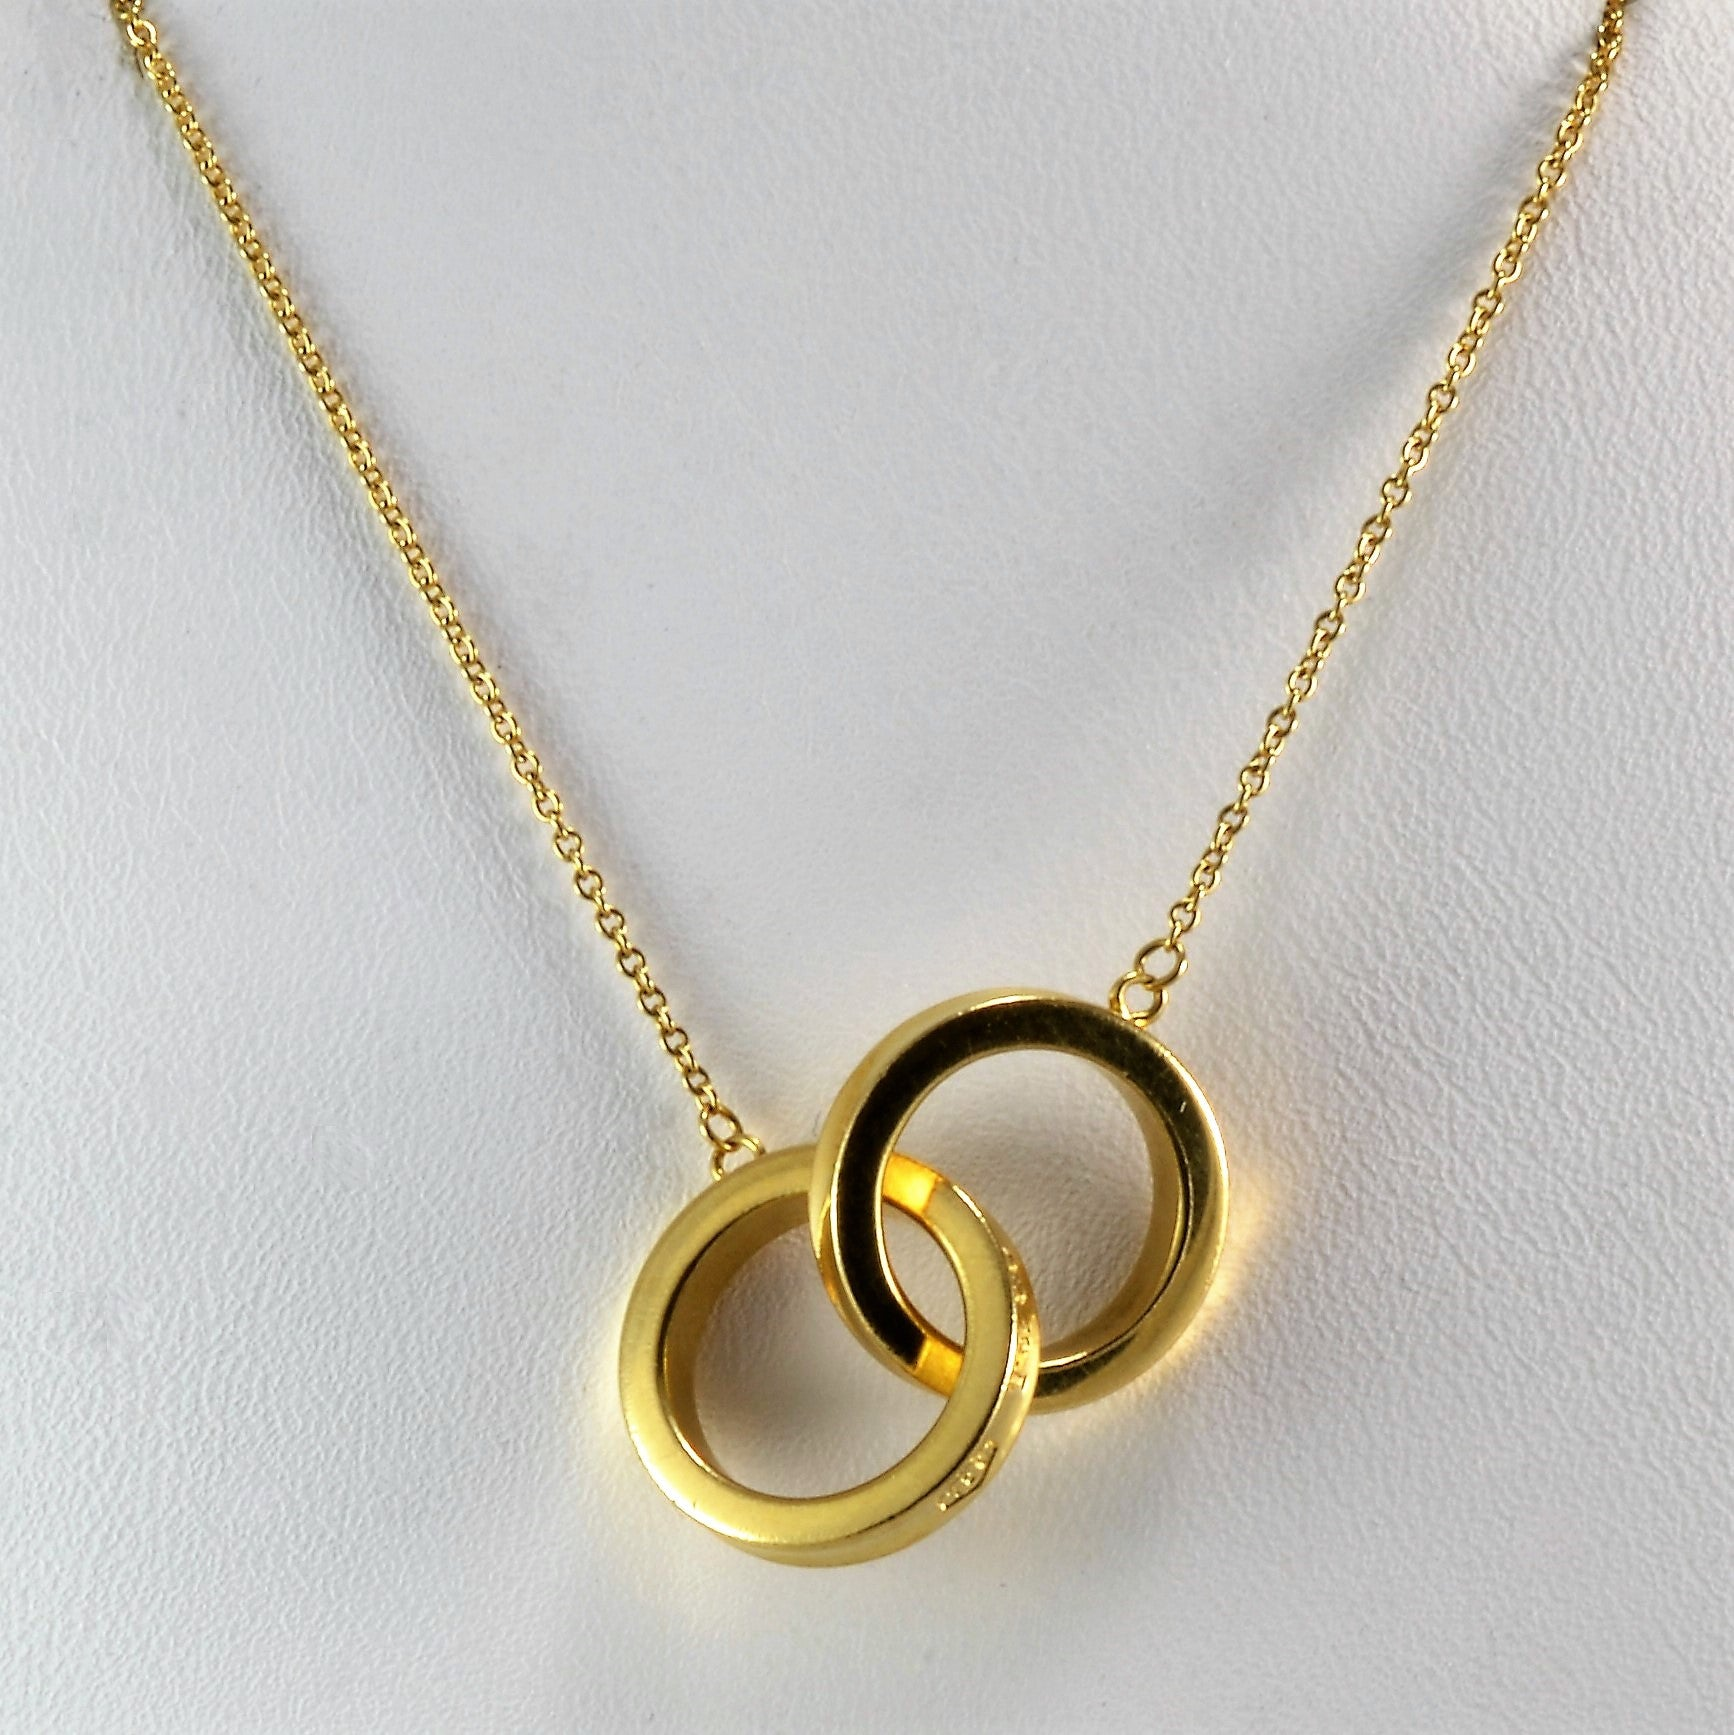 Tiffany & Co. 1837 Interlocking Circles Necklace